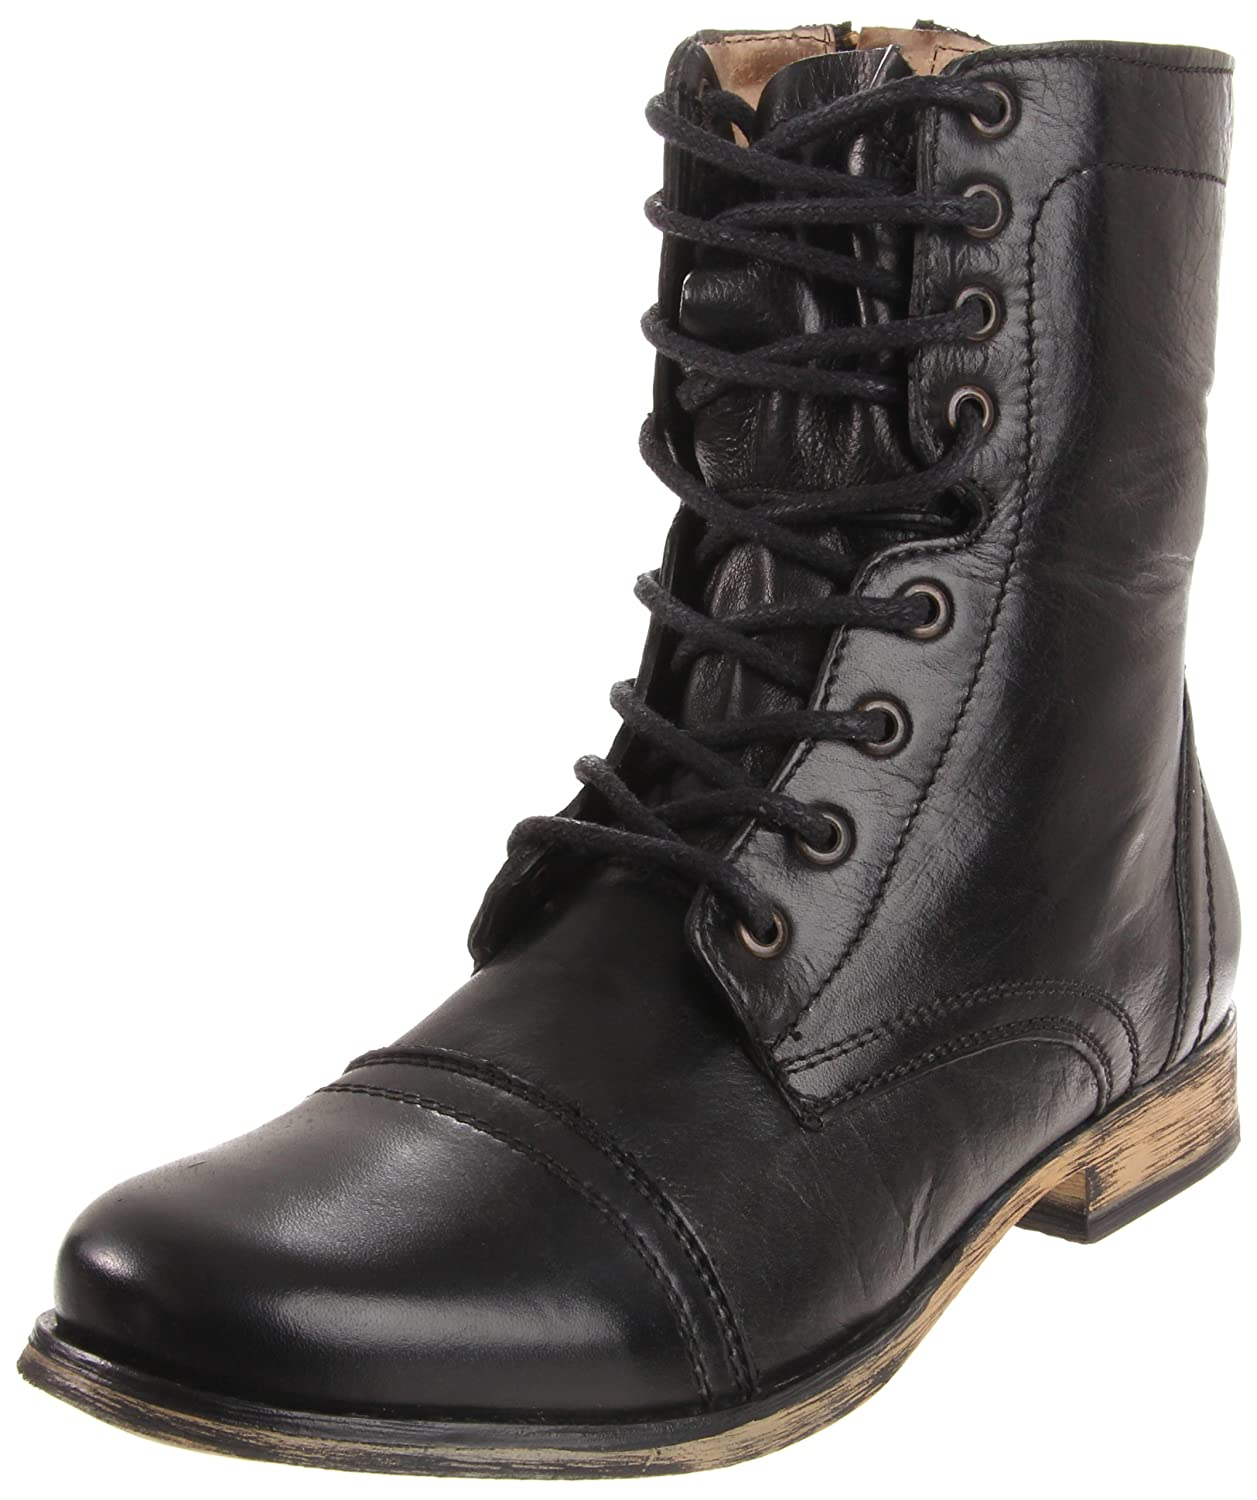 Mens Troopah2 Lace up Boots Steve Madden zb5bpSN2